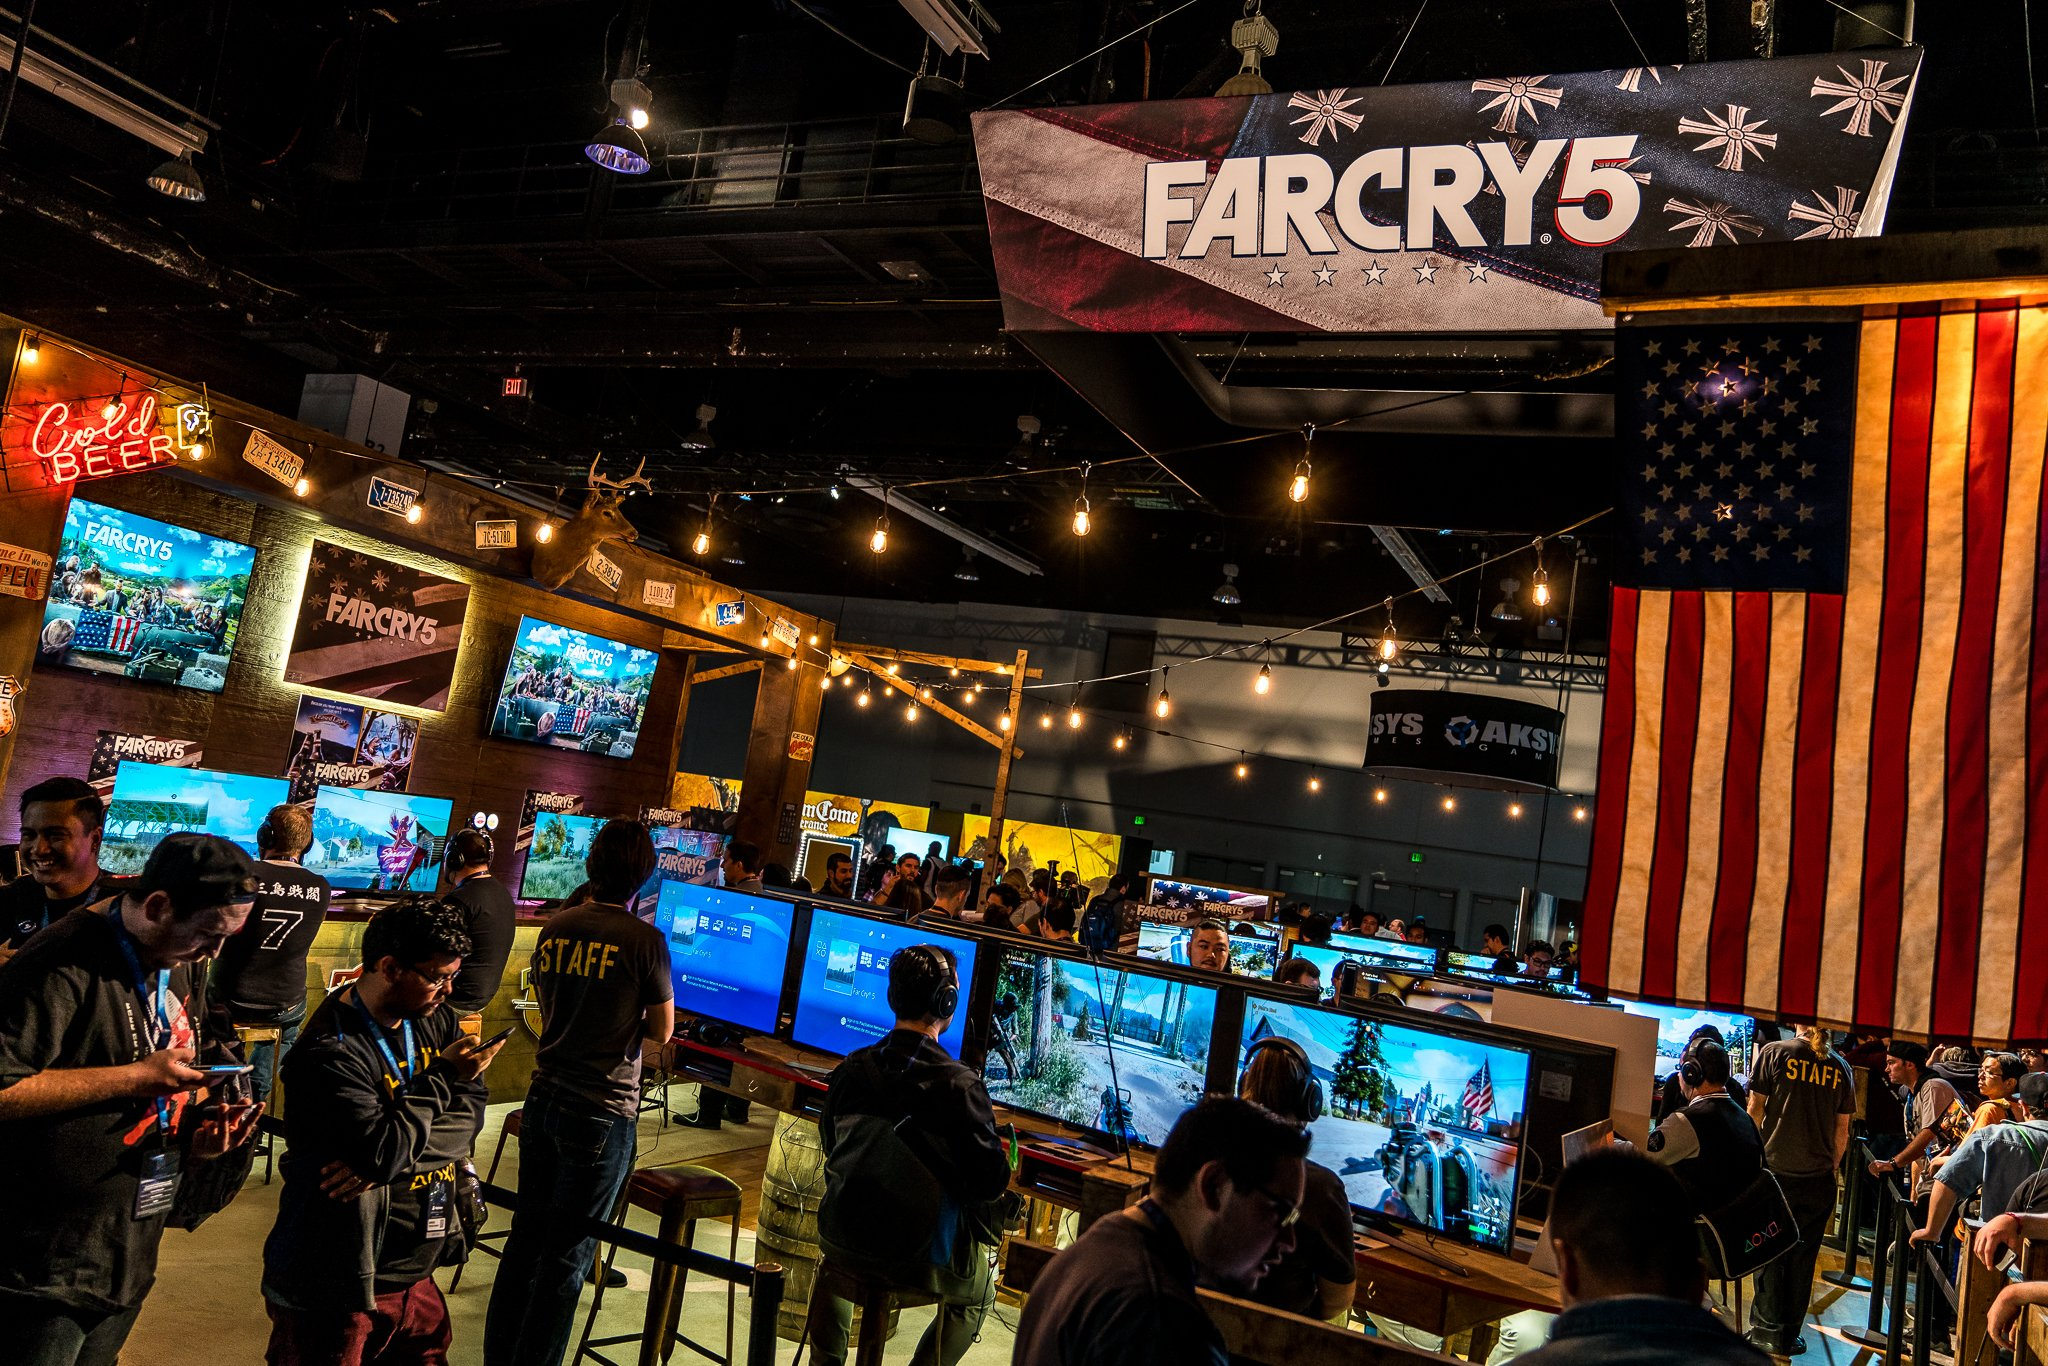 We'd like to raise a glass to the bar-themed Far Cry 5 booth at #PSX. https://t.co/7eWDcXMpqt